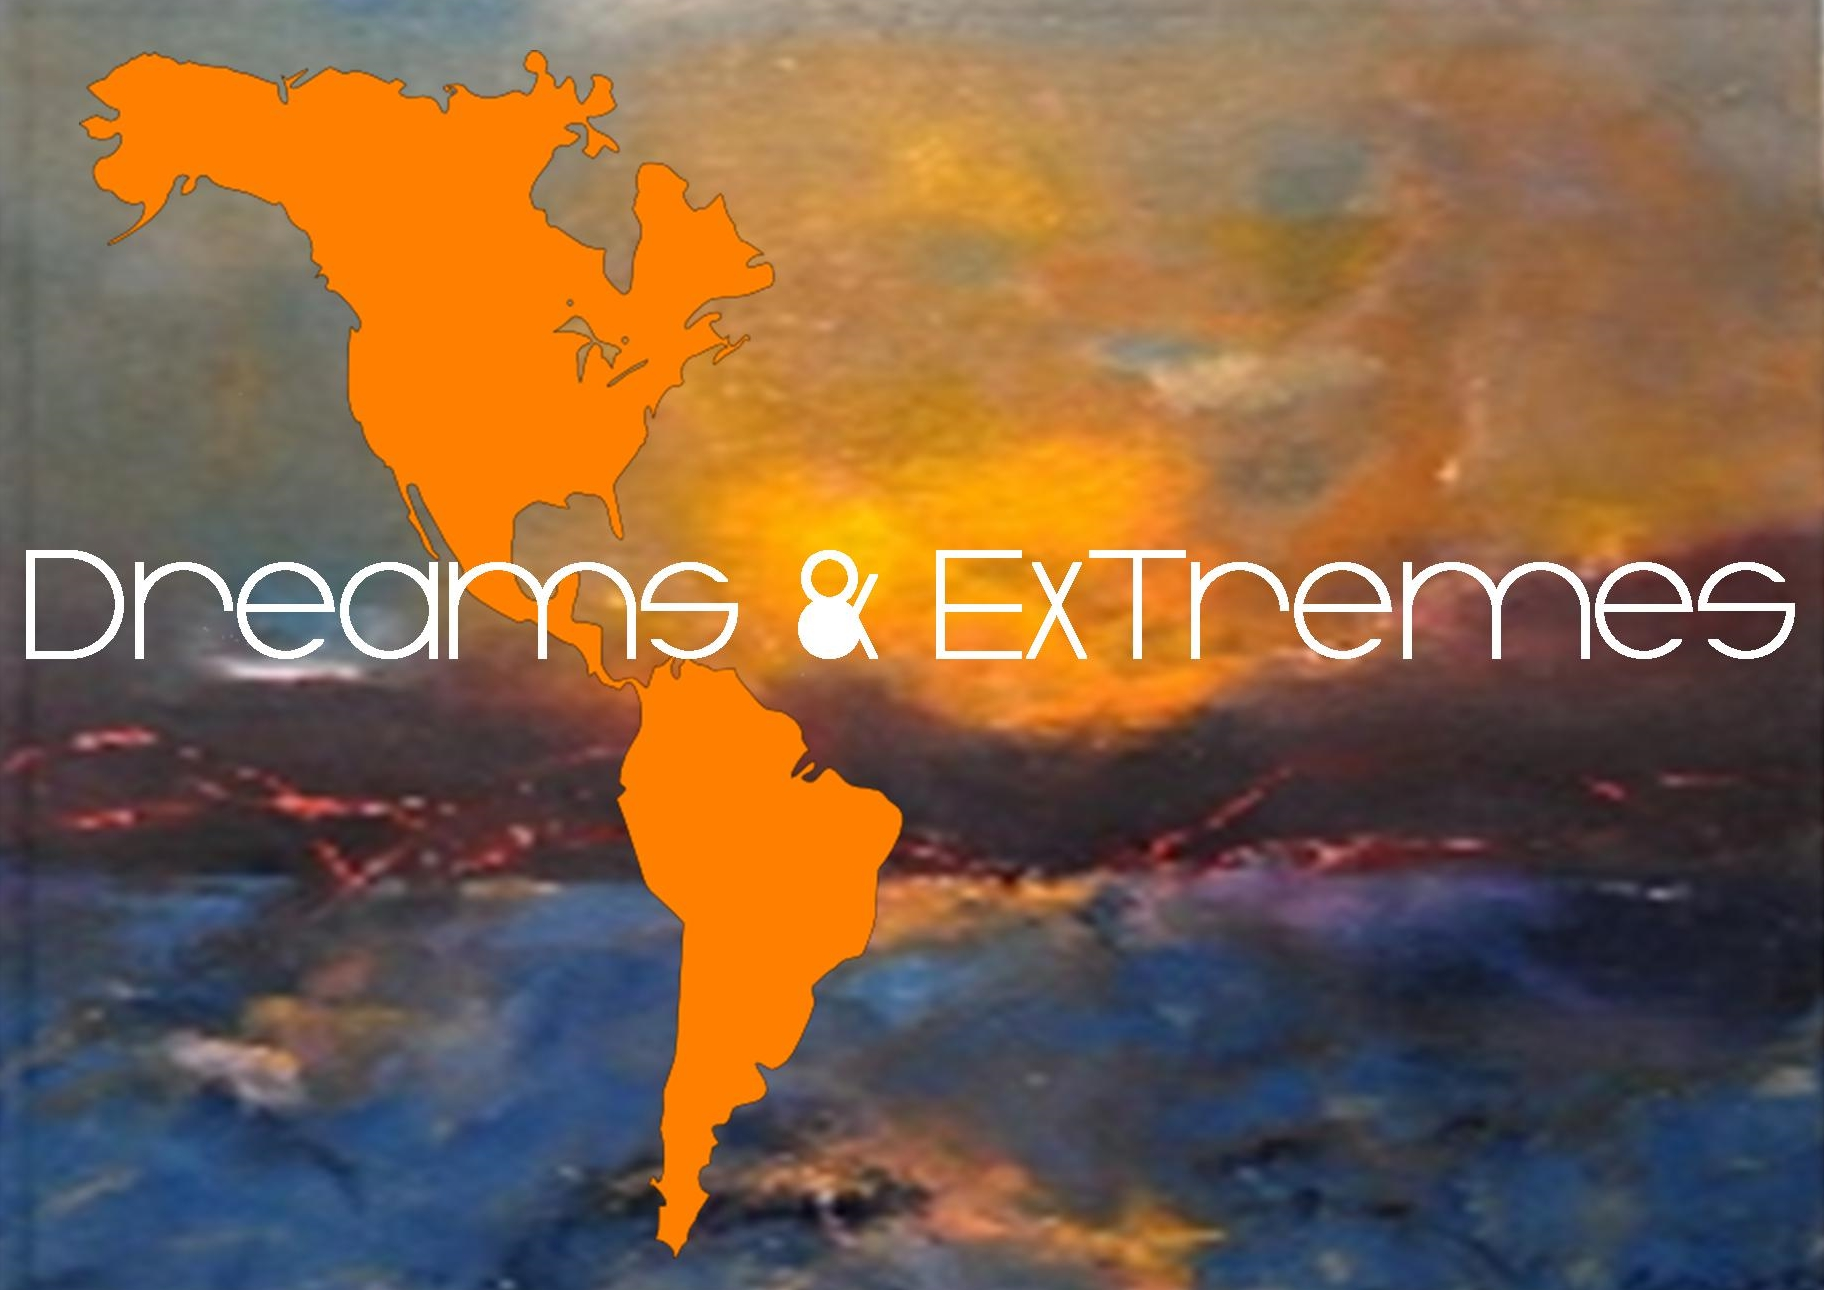 Dreams and Extremes